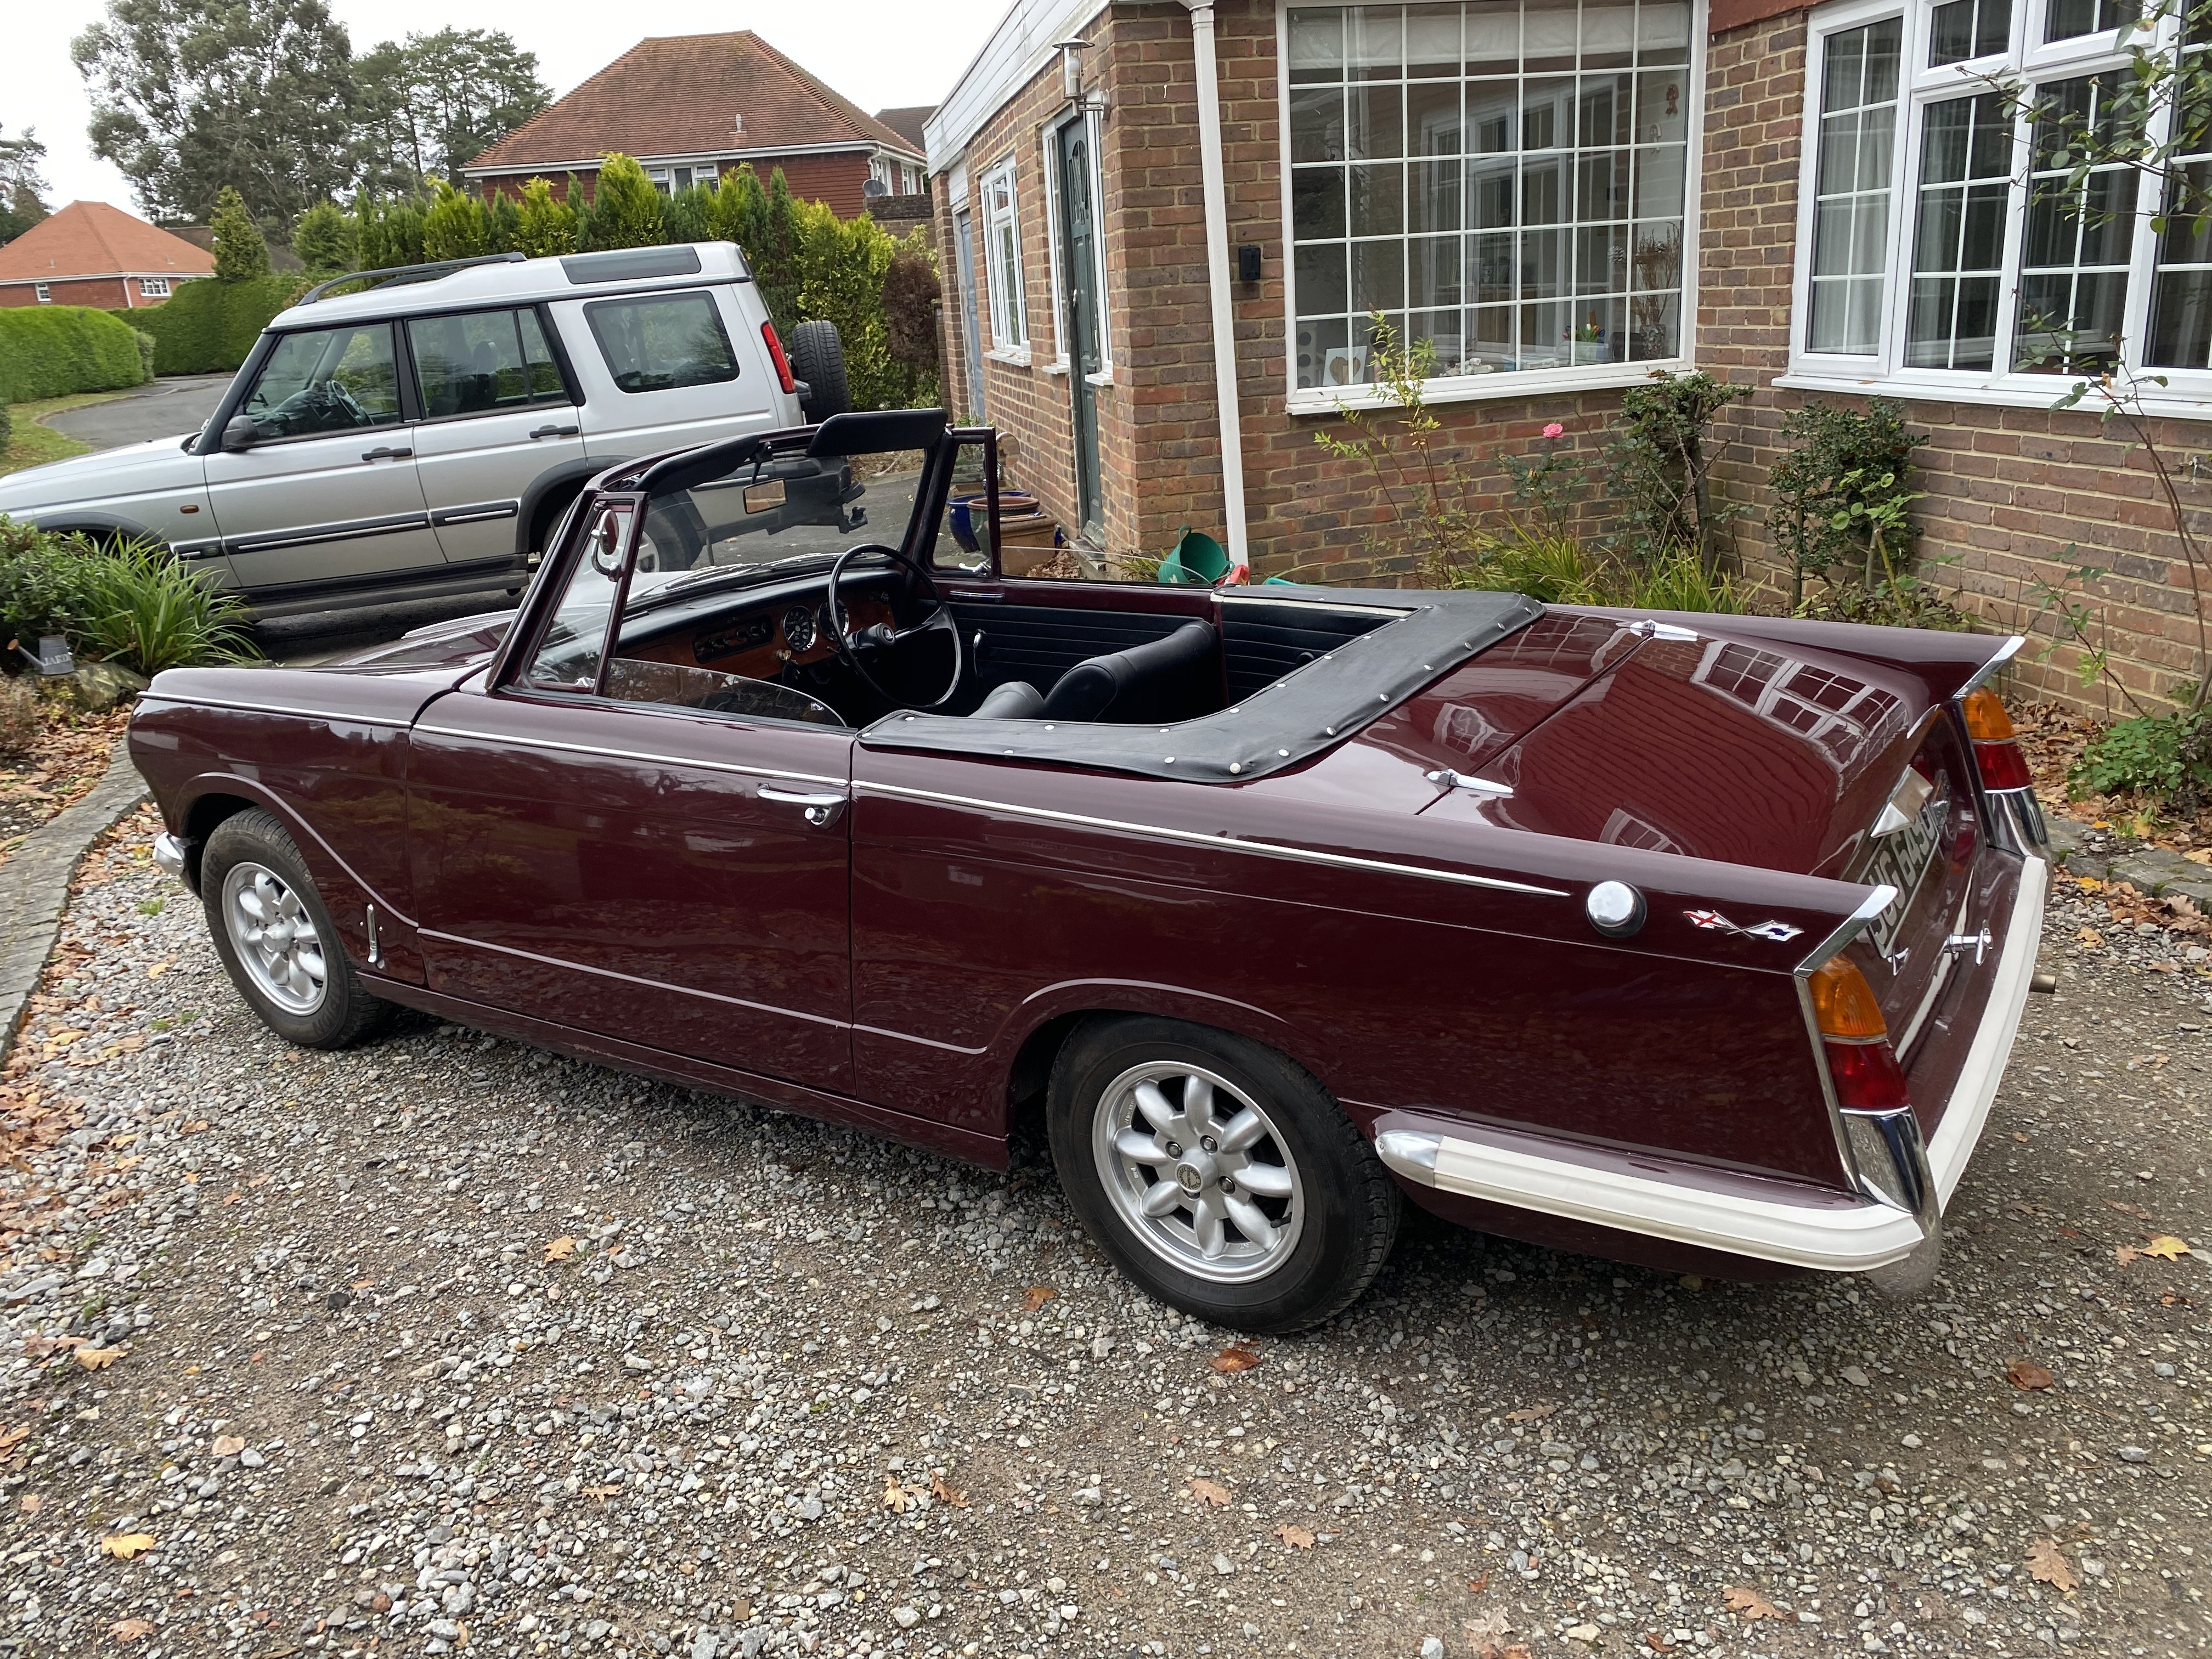 1969 Triumph Herald 13/60 Convertible For Sale (picture 2 of 6)